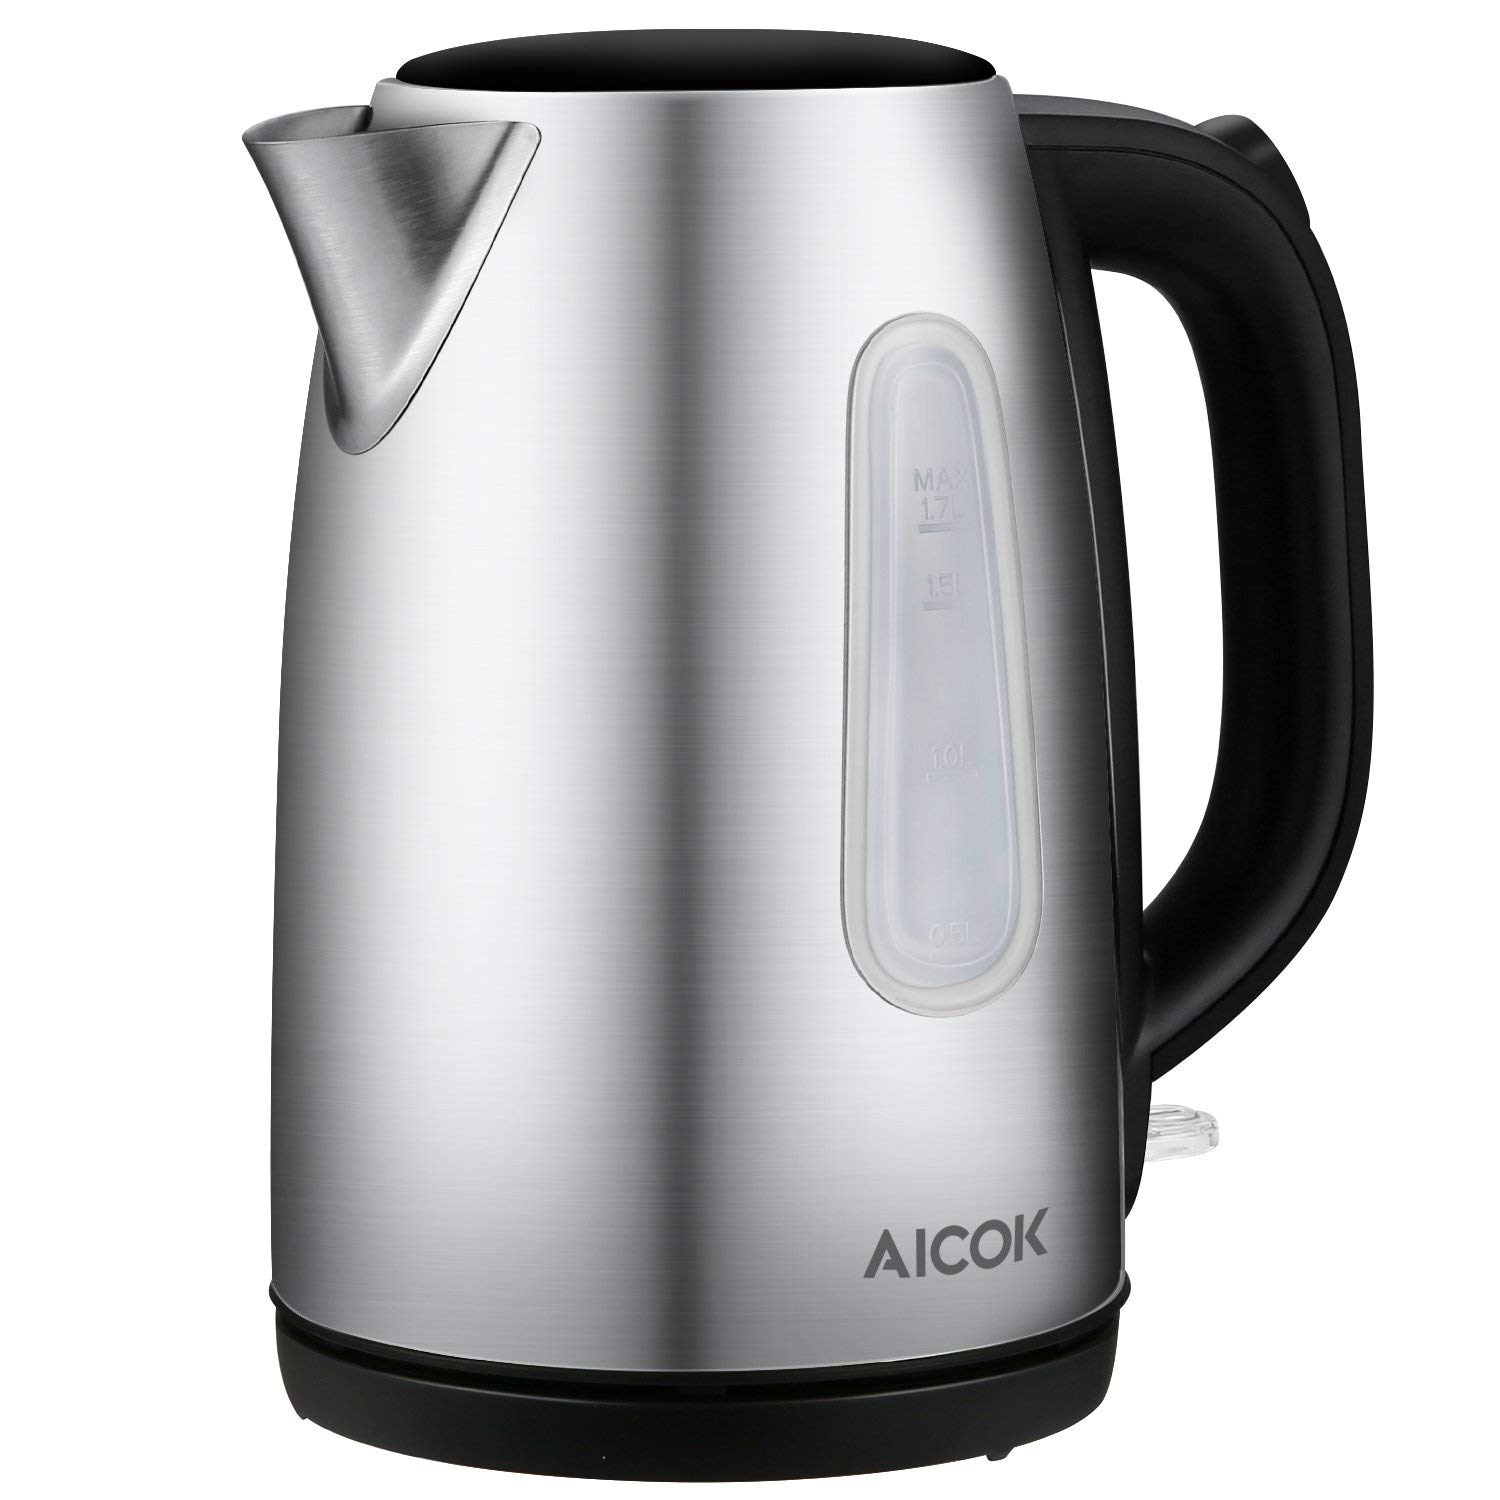 Aicok Electric Kettle Fast Boil 1.7 L 3000W Kettle, Brushed Stainless Steel Jug Kettle